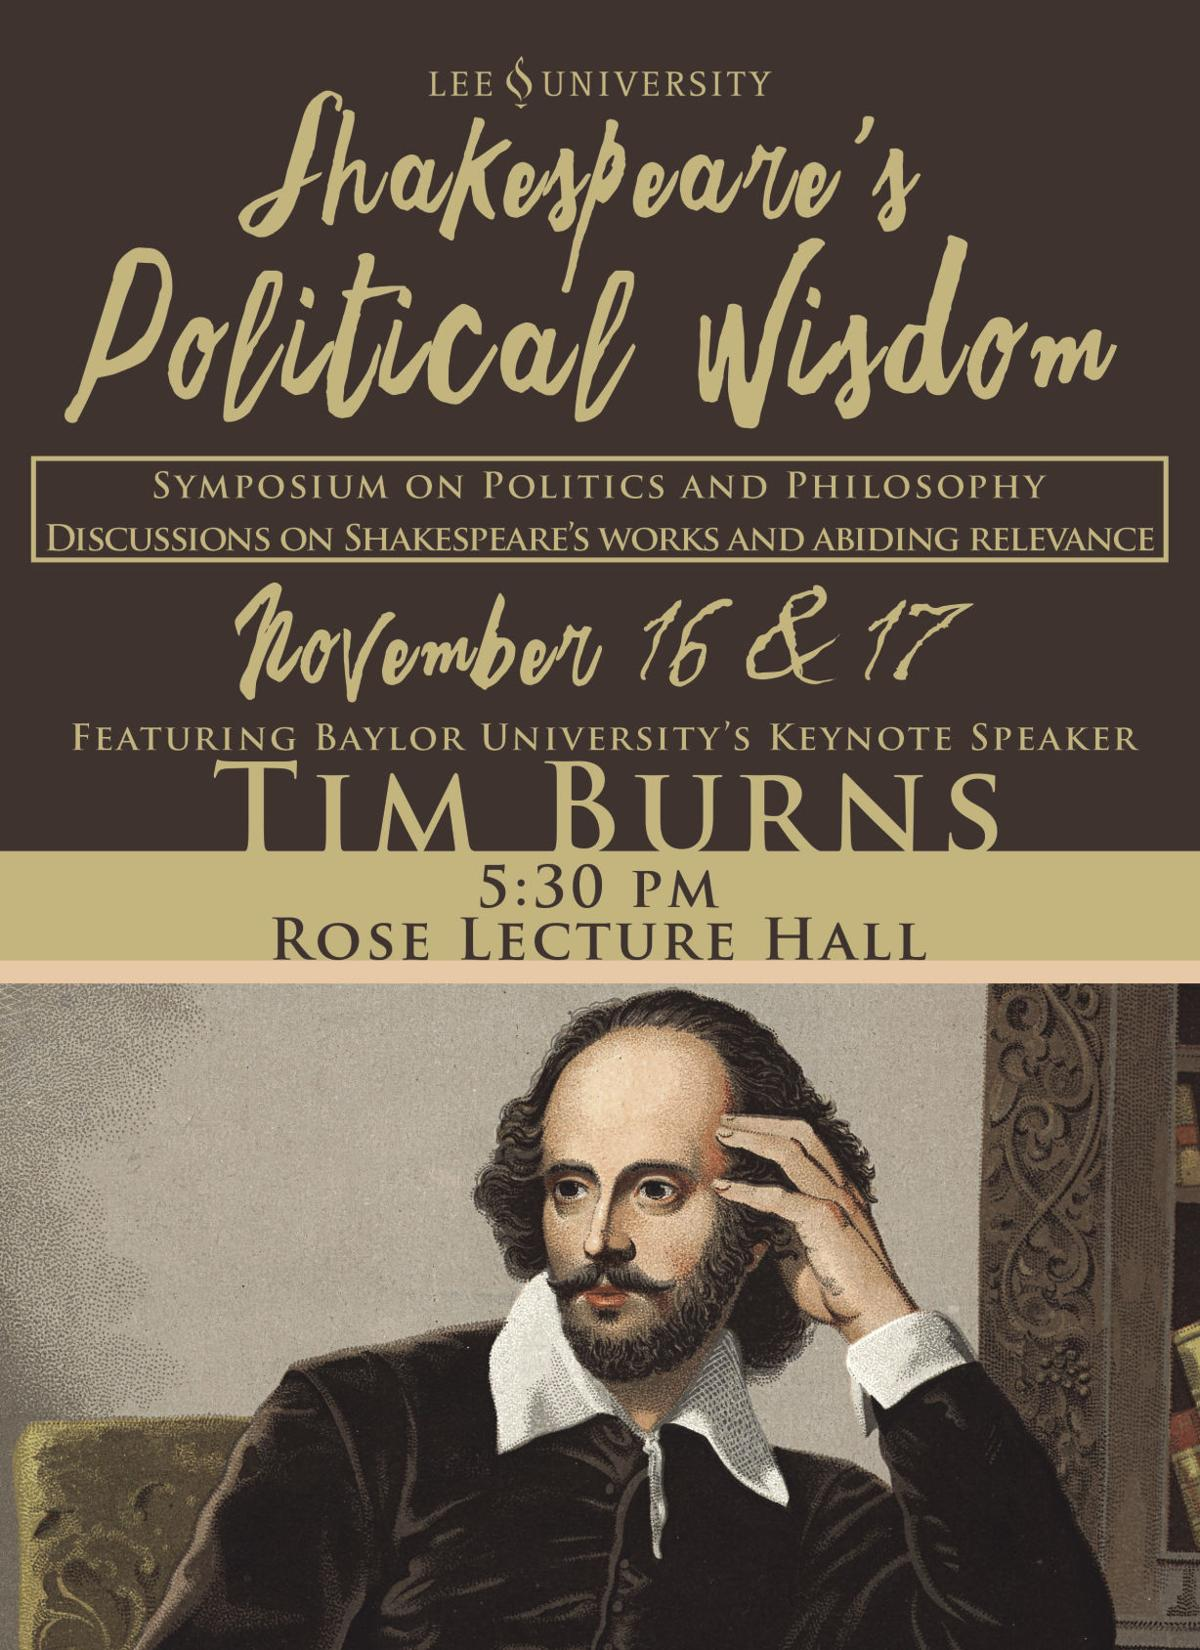 The Department of History, Political Science & Humanities is hosting a Shakespeare's Political Wisdom Symposium Nov. 16 and 17 at 5:30 p.m. in the Rose Lecture Hall.  Courtesy of Reese Swistek